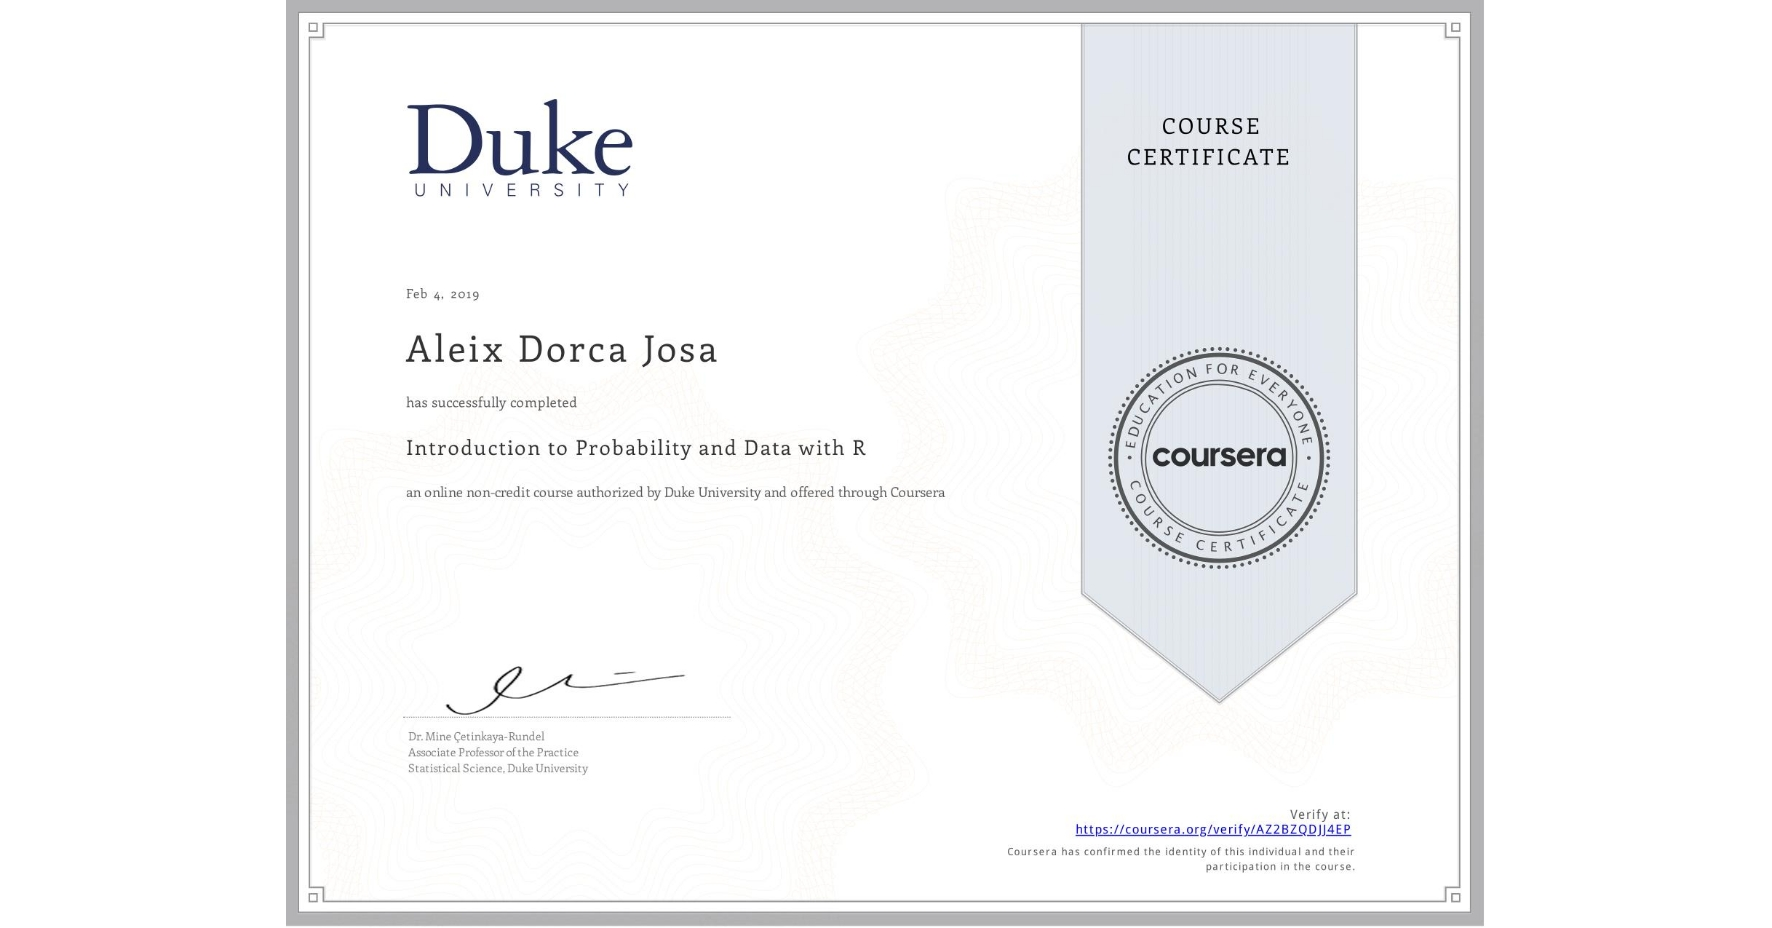 View certificate for Aleix Dorca Josa, Introduction to Probability and Data with R, an online non-credit course authorized by Duke University and offered through Coursera